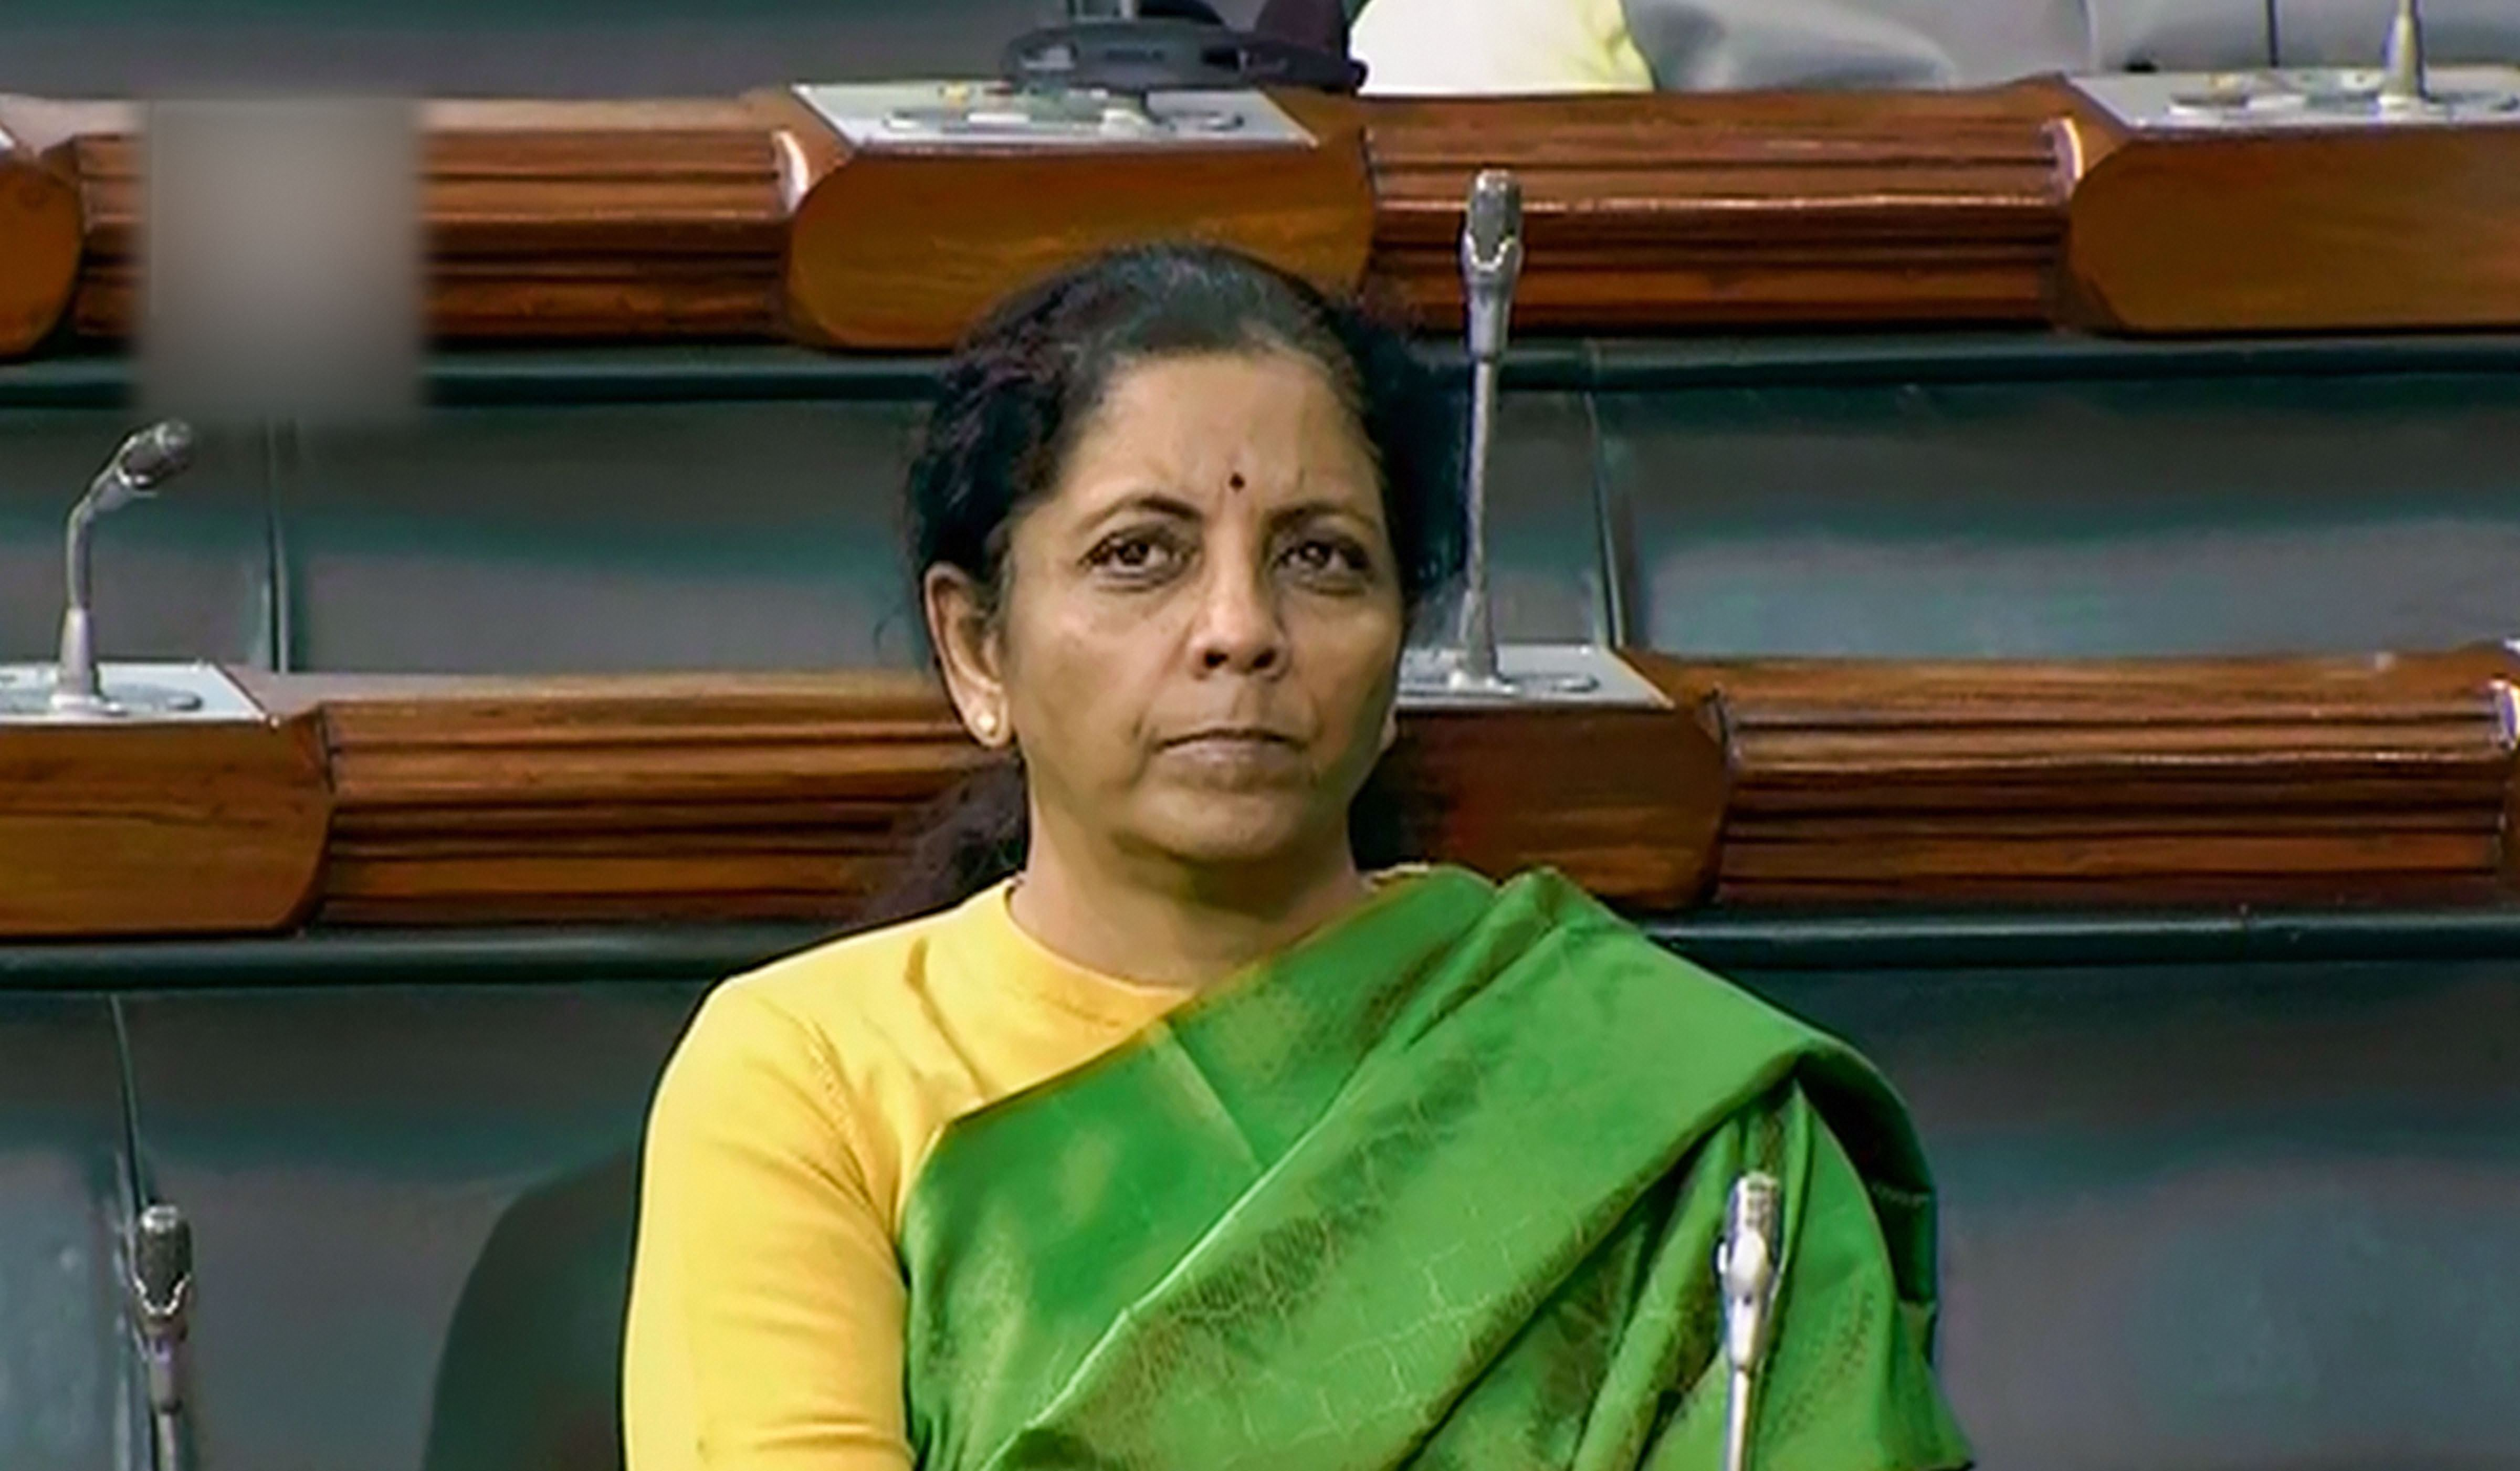 Nirmala Sitharaman has earmarked Rs 141 crore for college and university scholarships, down from the 2019-20 allocation of Rs 356 crore, which was revised upwards to Rs 381 crore.